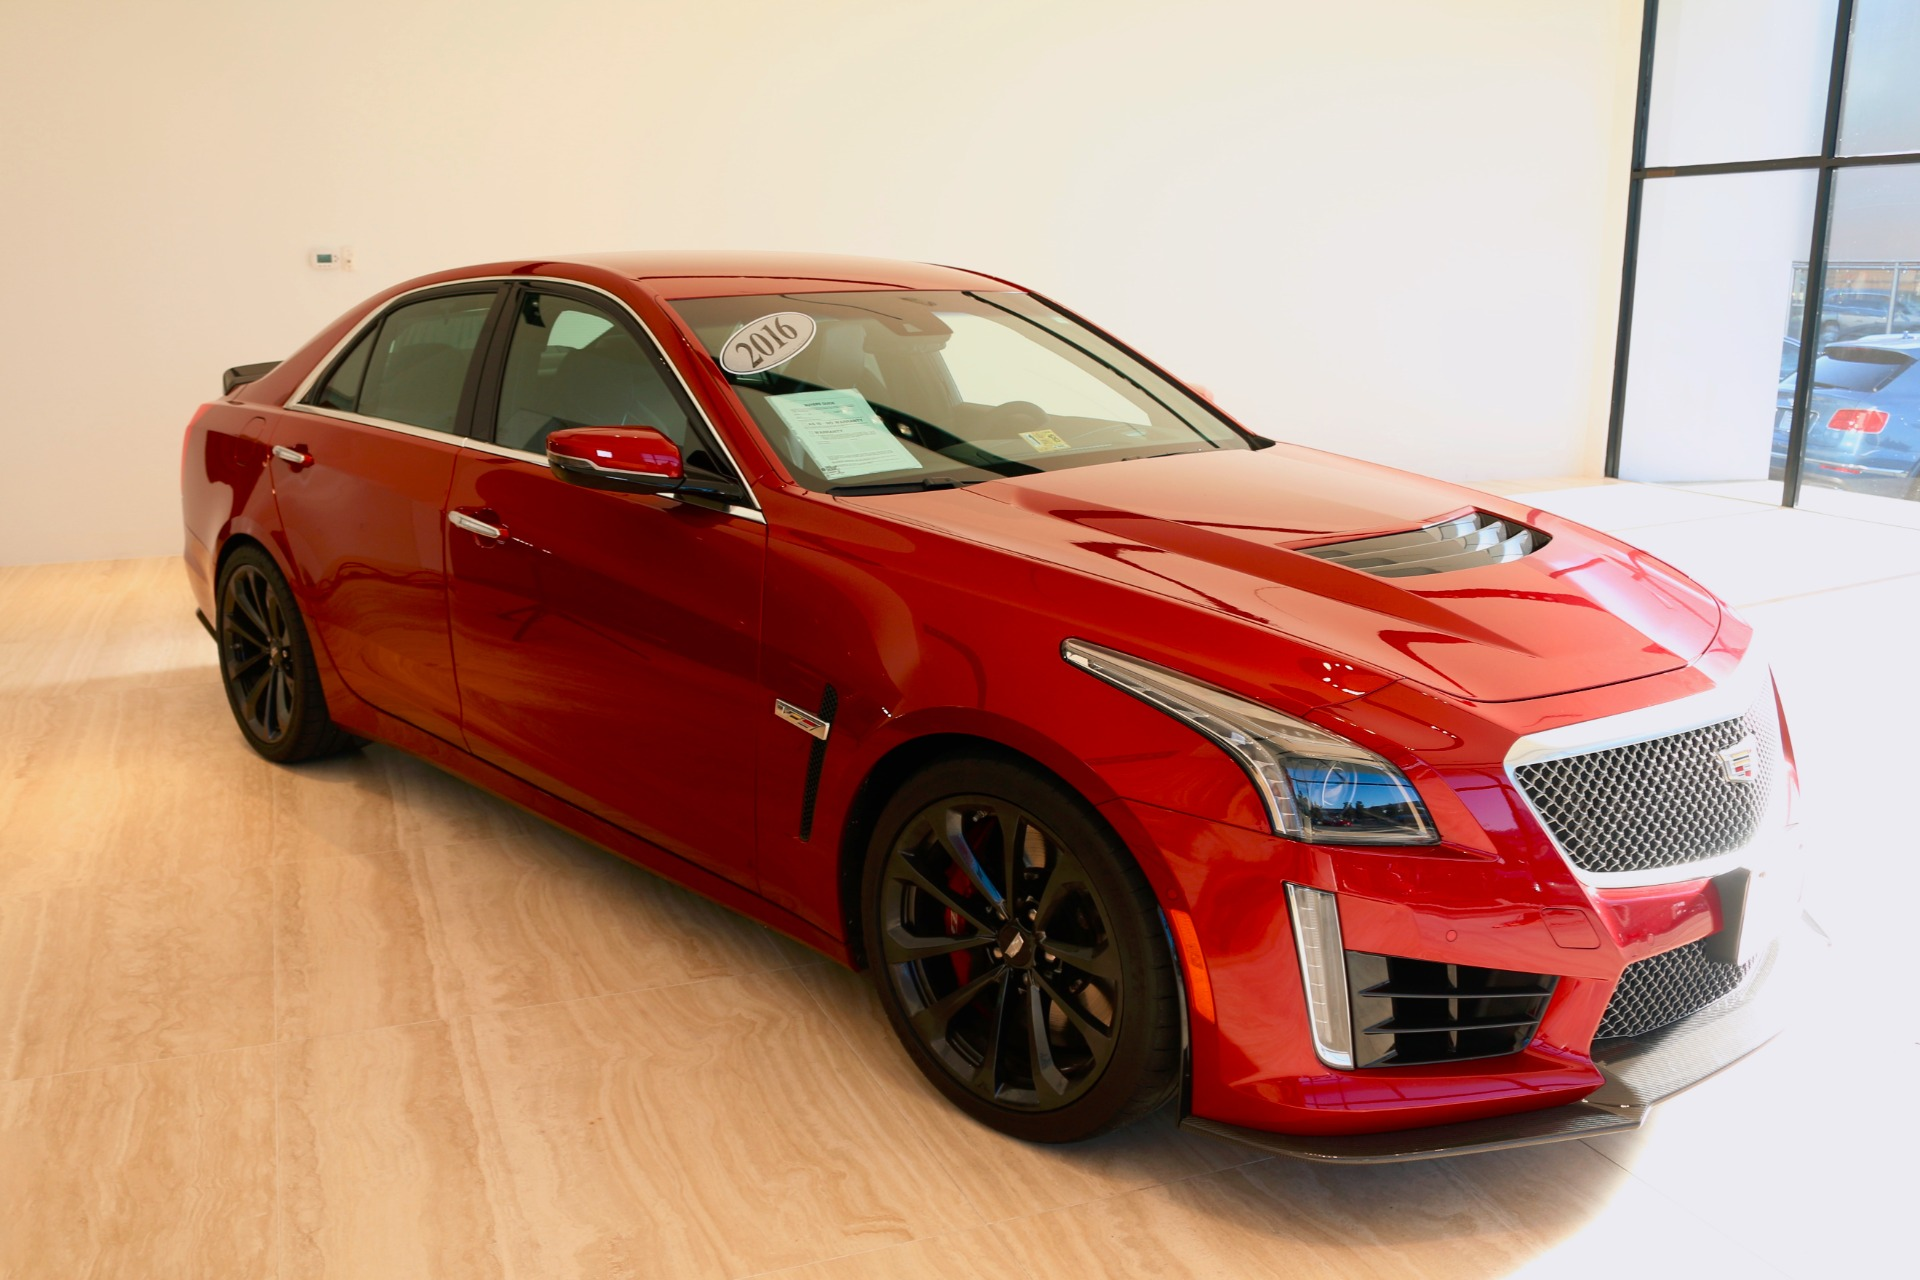 757_p7_l Great Description About 2012 Cts-v for Sale with Inspiring Images Cars Review